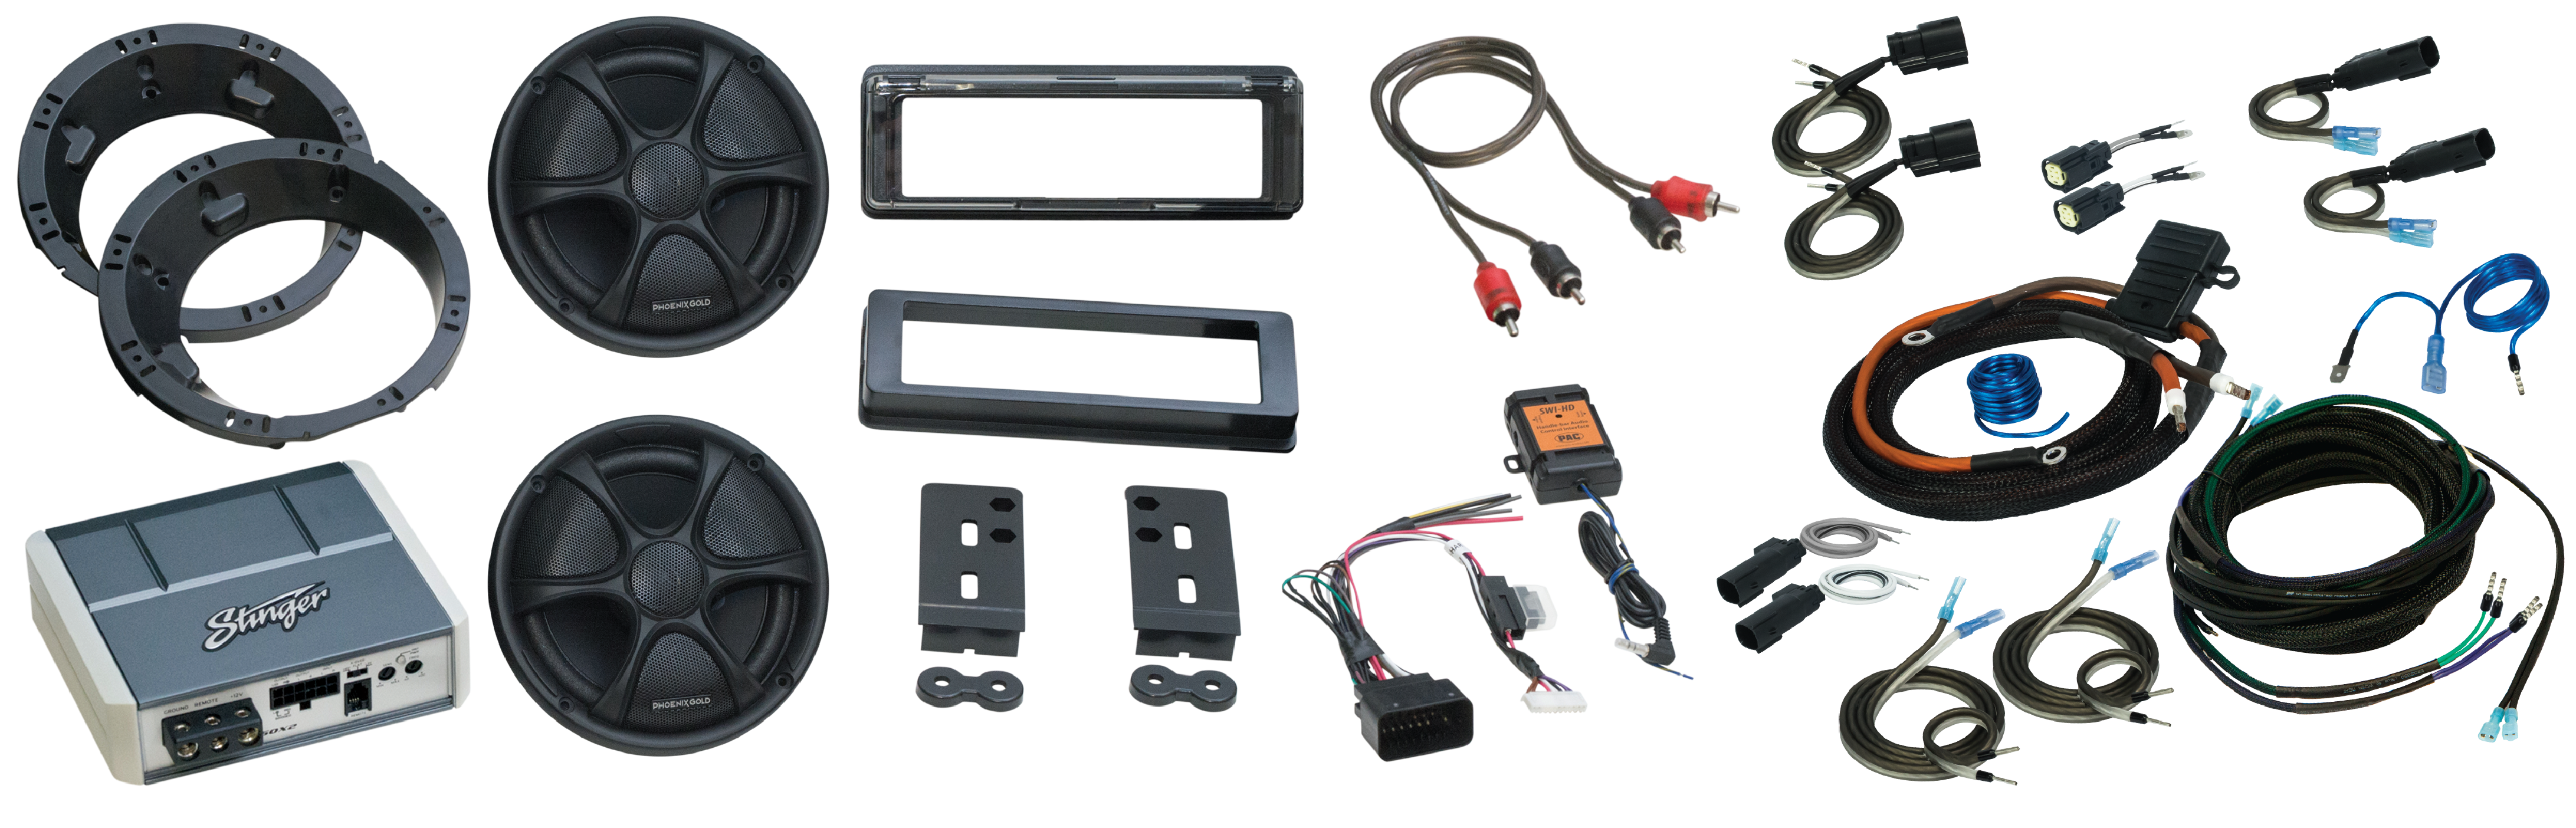 Stinger Announces Complete 2-Channel Upgrade Kit for Harley-Davidson